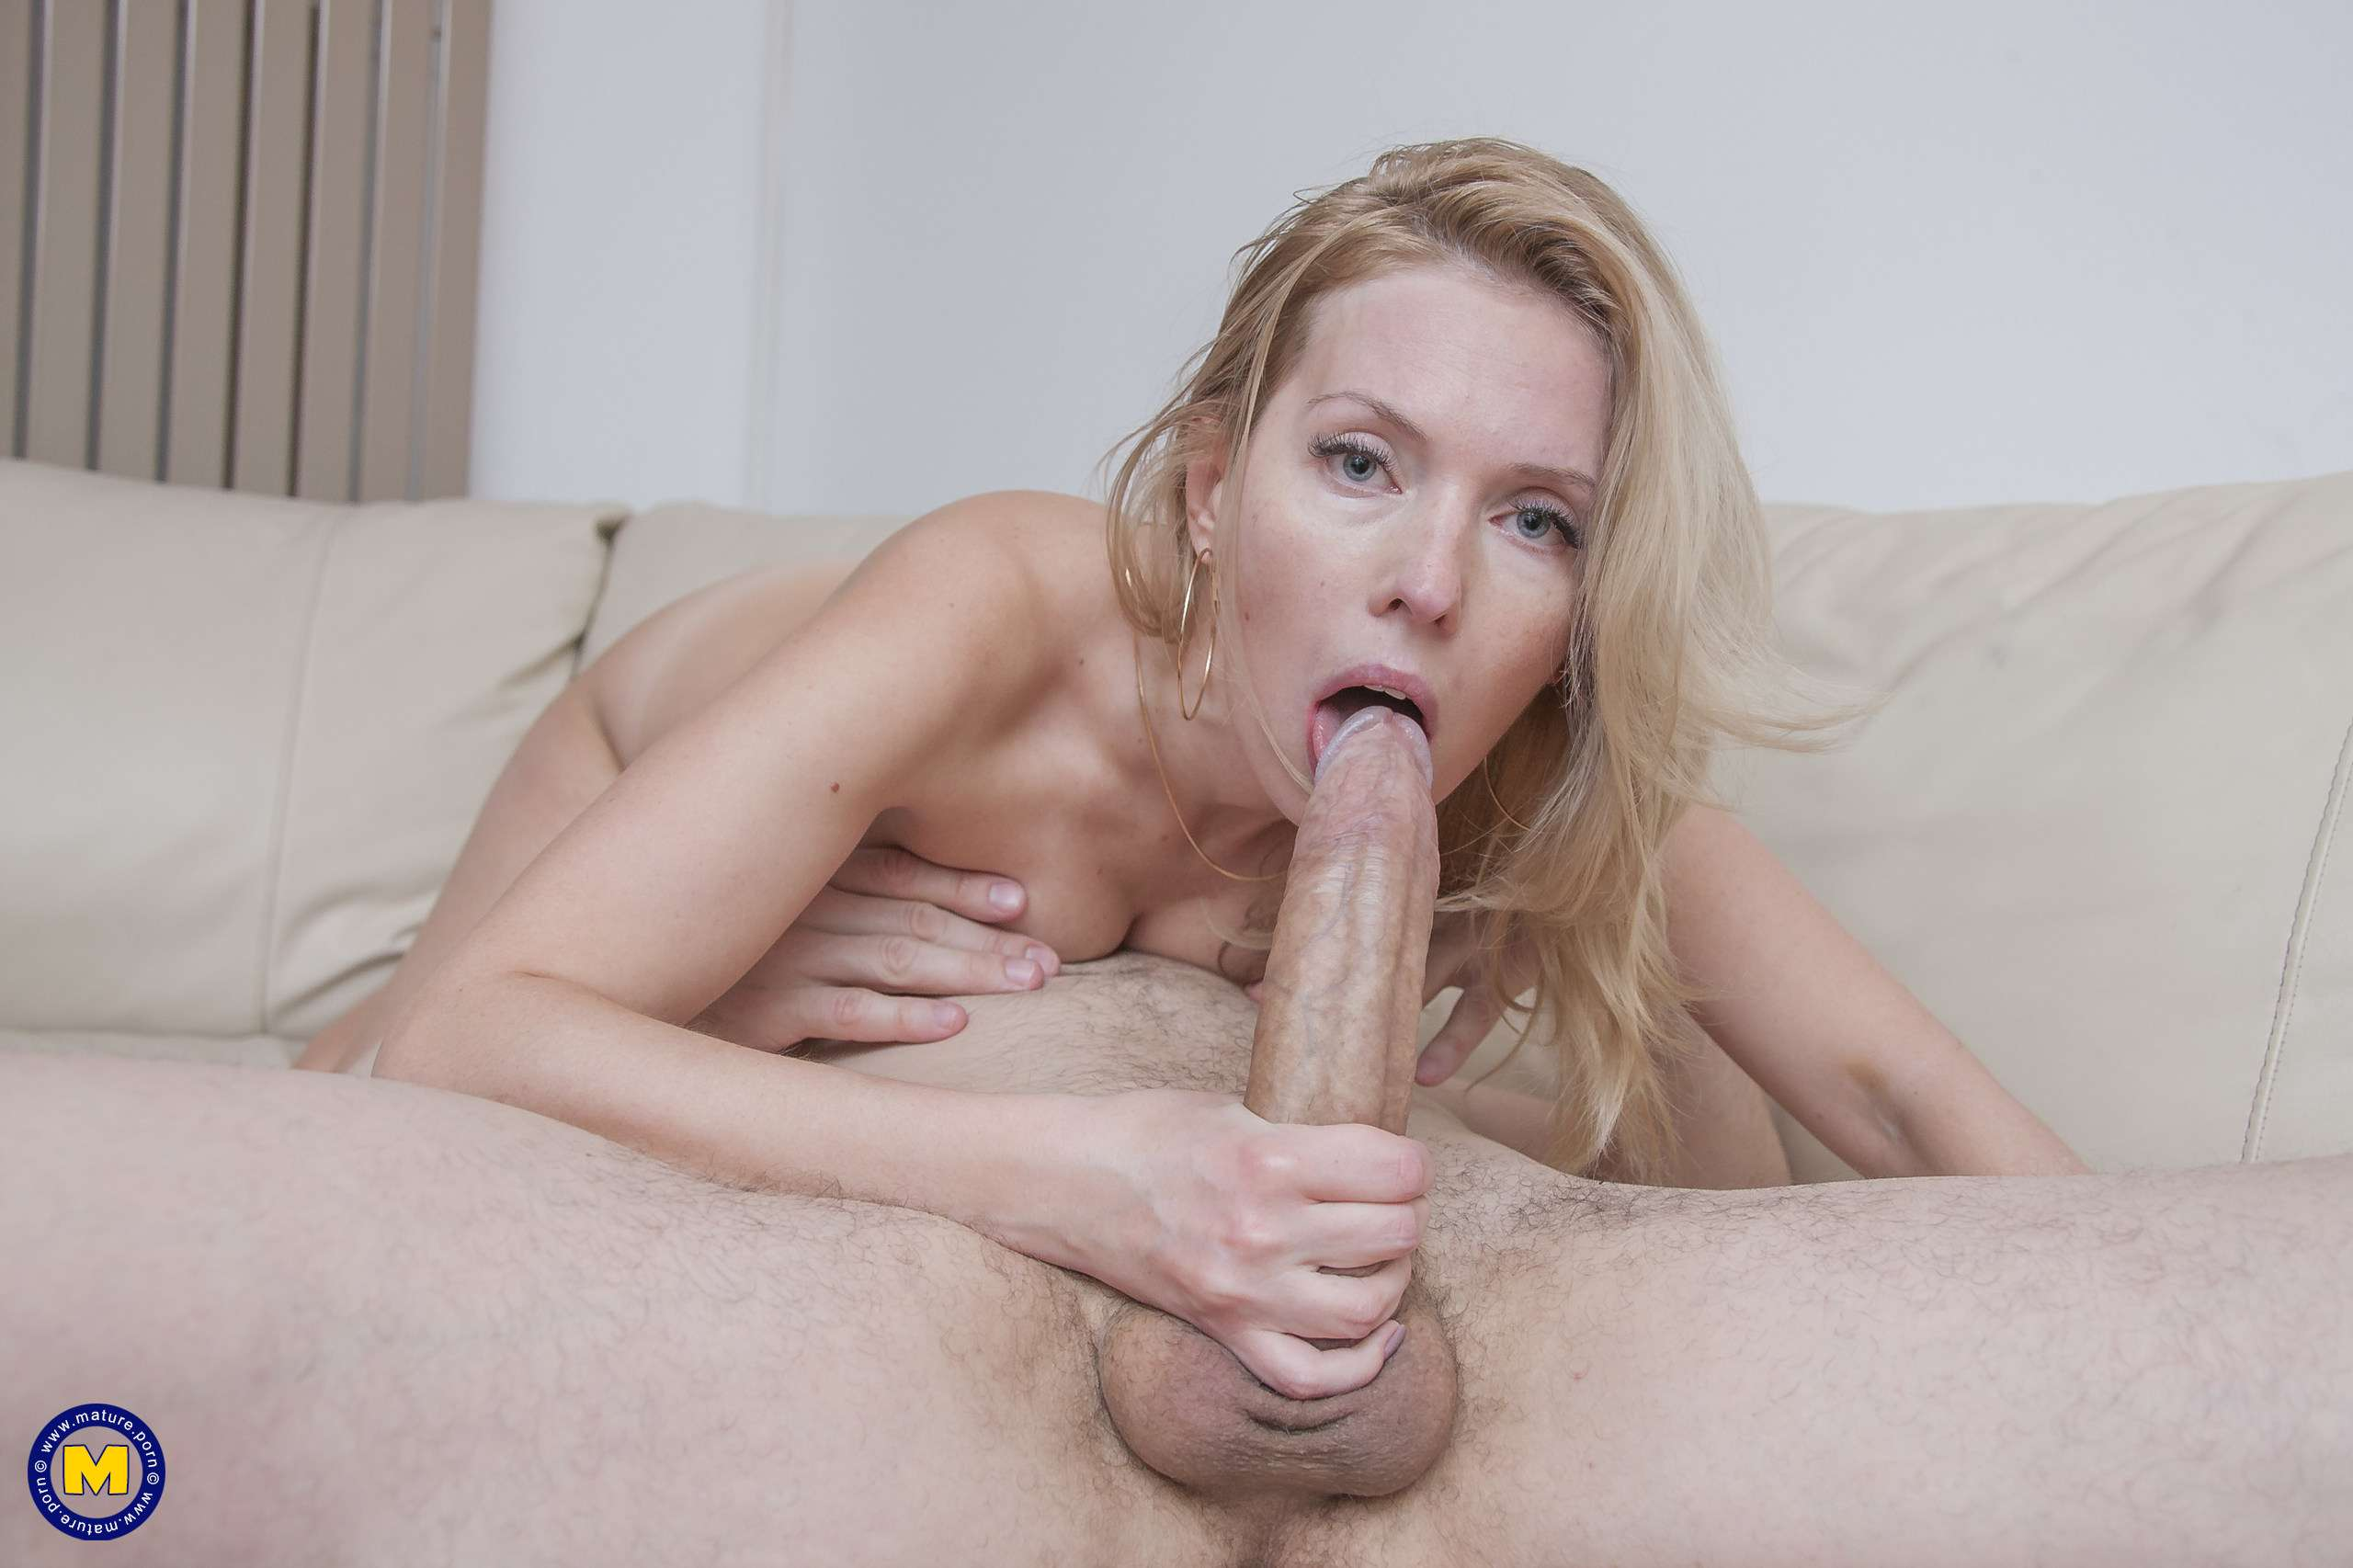 Hot blonde MILF fucking and sucking a big hard cock